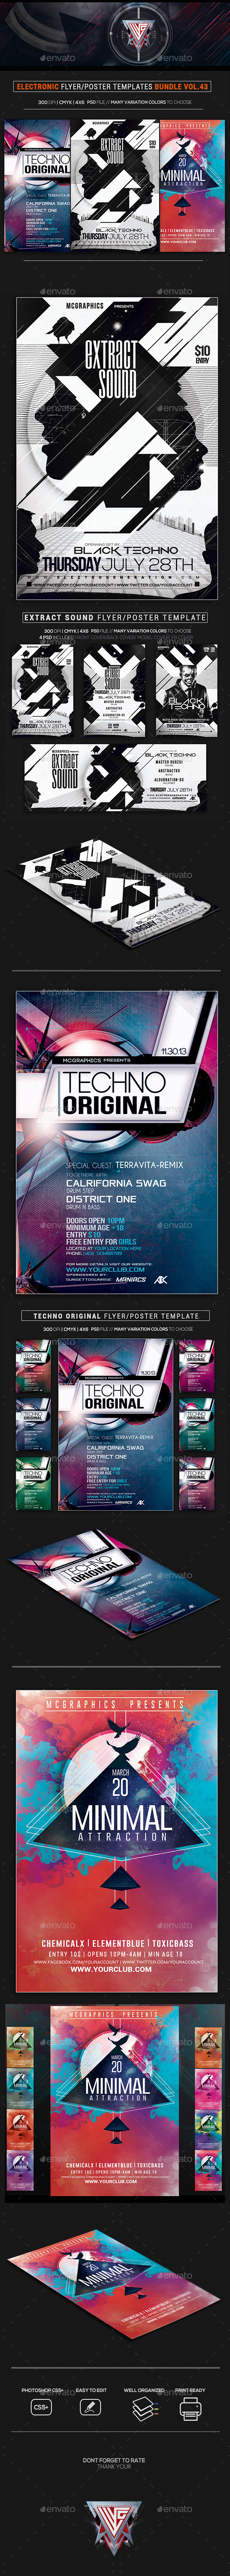 Electro Music Flyer/Poster Bundle Vol. 43 - Flyers Print Templates